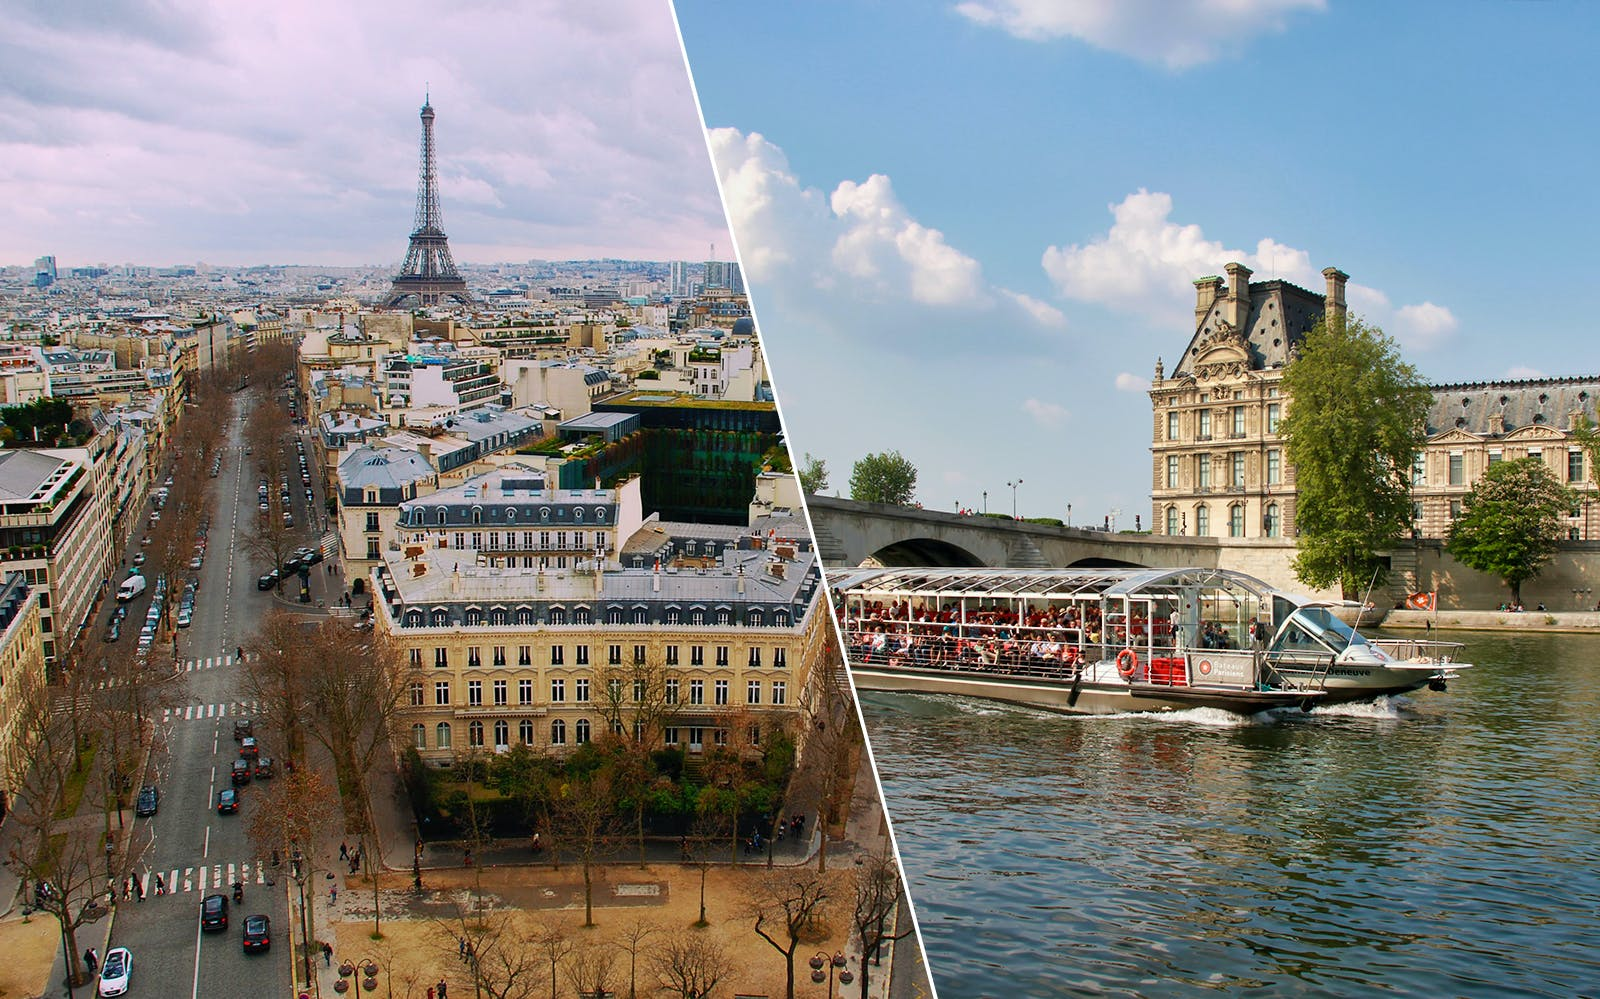 Seine River Cruise and Paris City Tour Combo